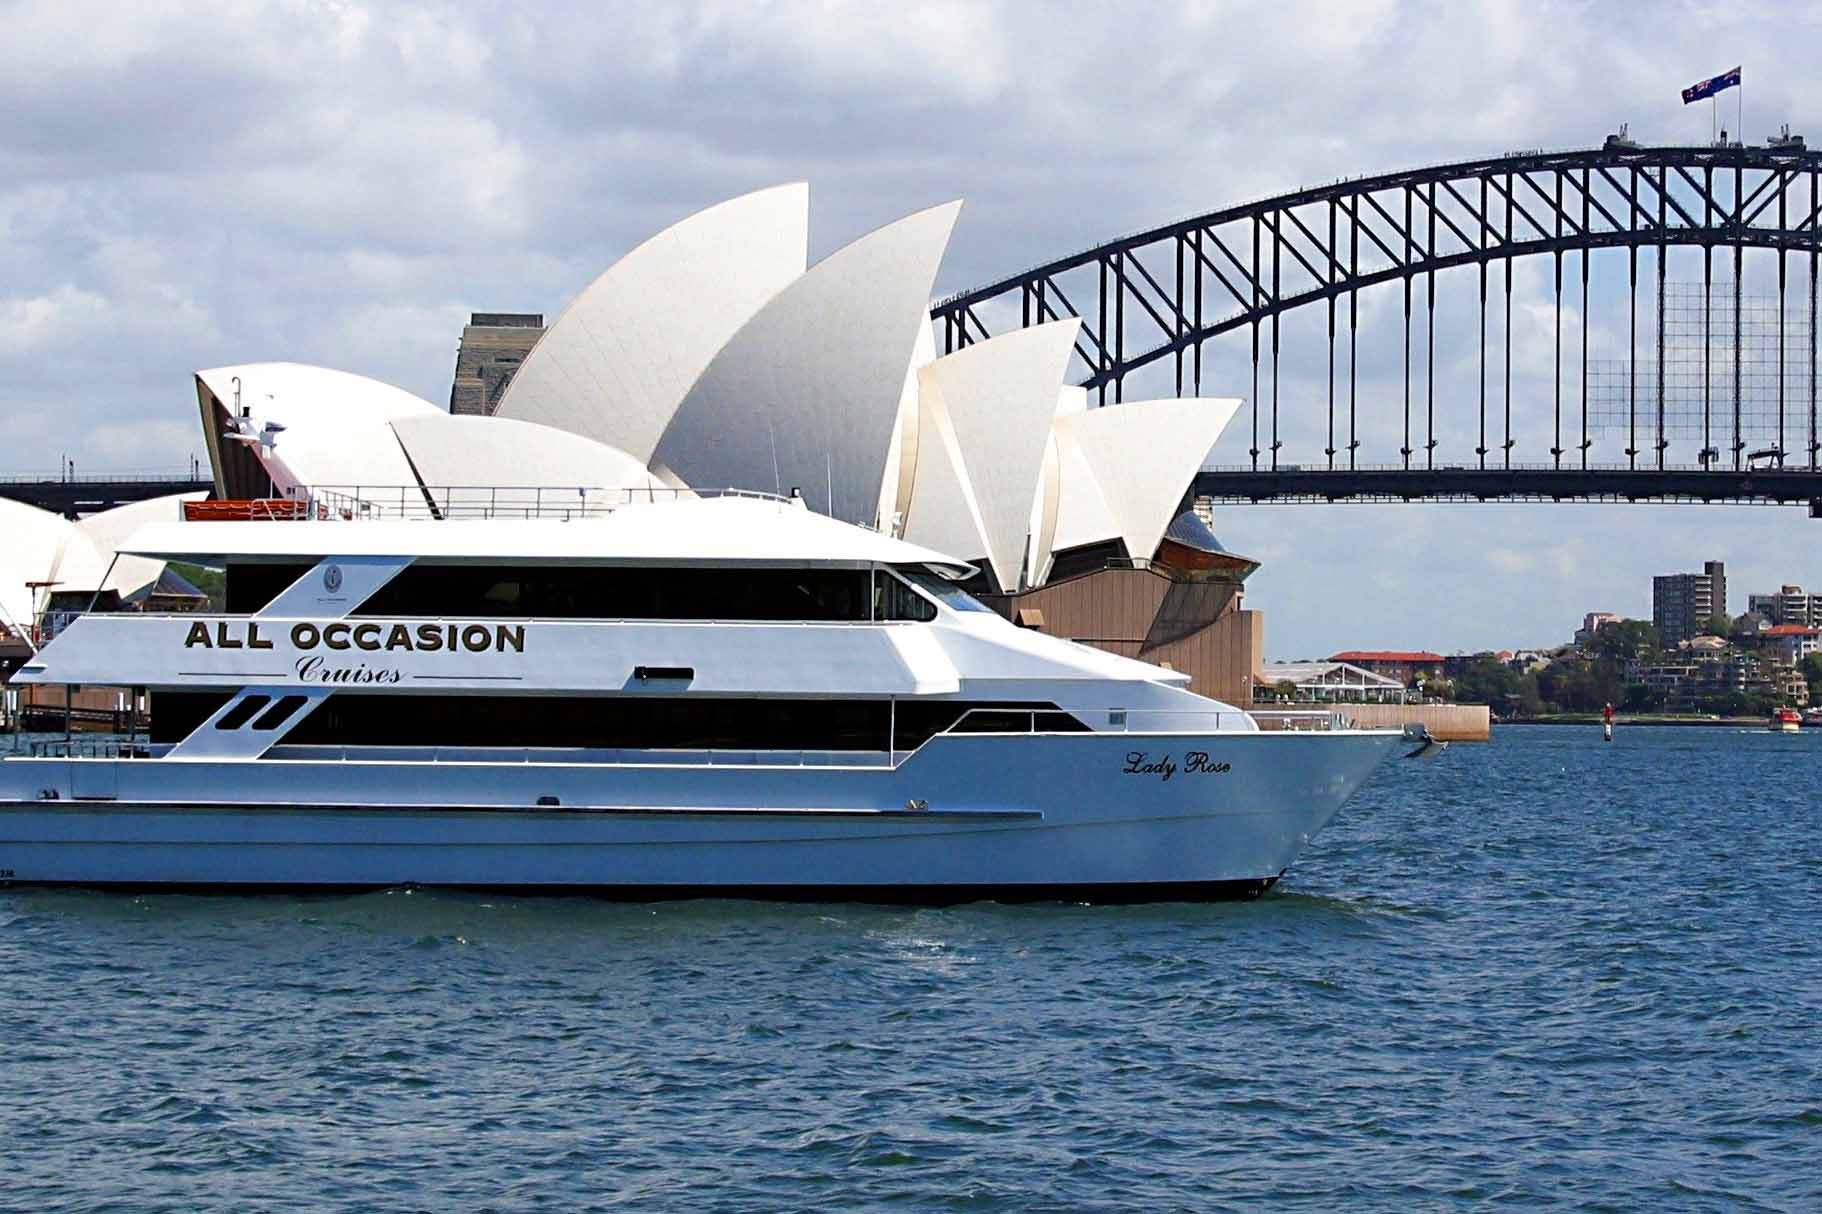 All Occasion Cruises – Cruise Boat Venues